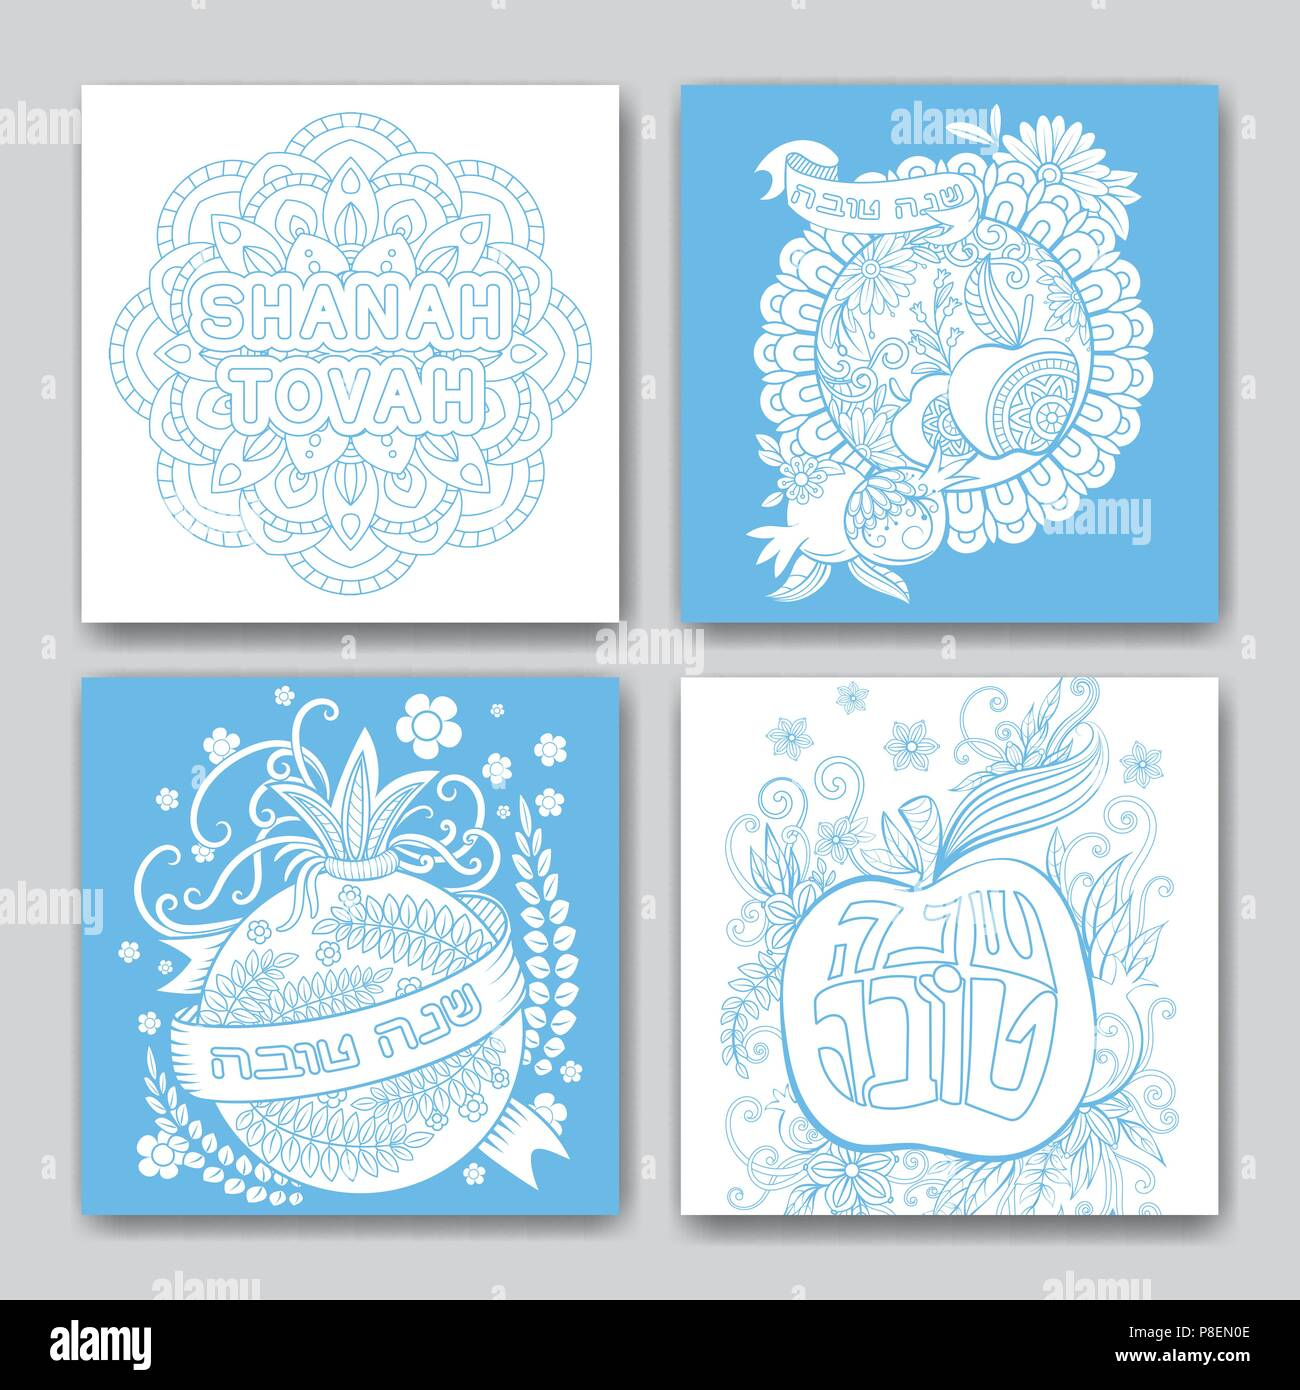 Rosh Hashanah Jewish New Year Greeting Cards Collection With